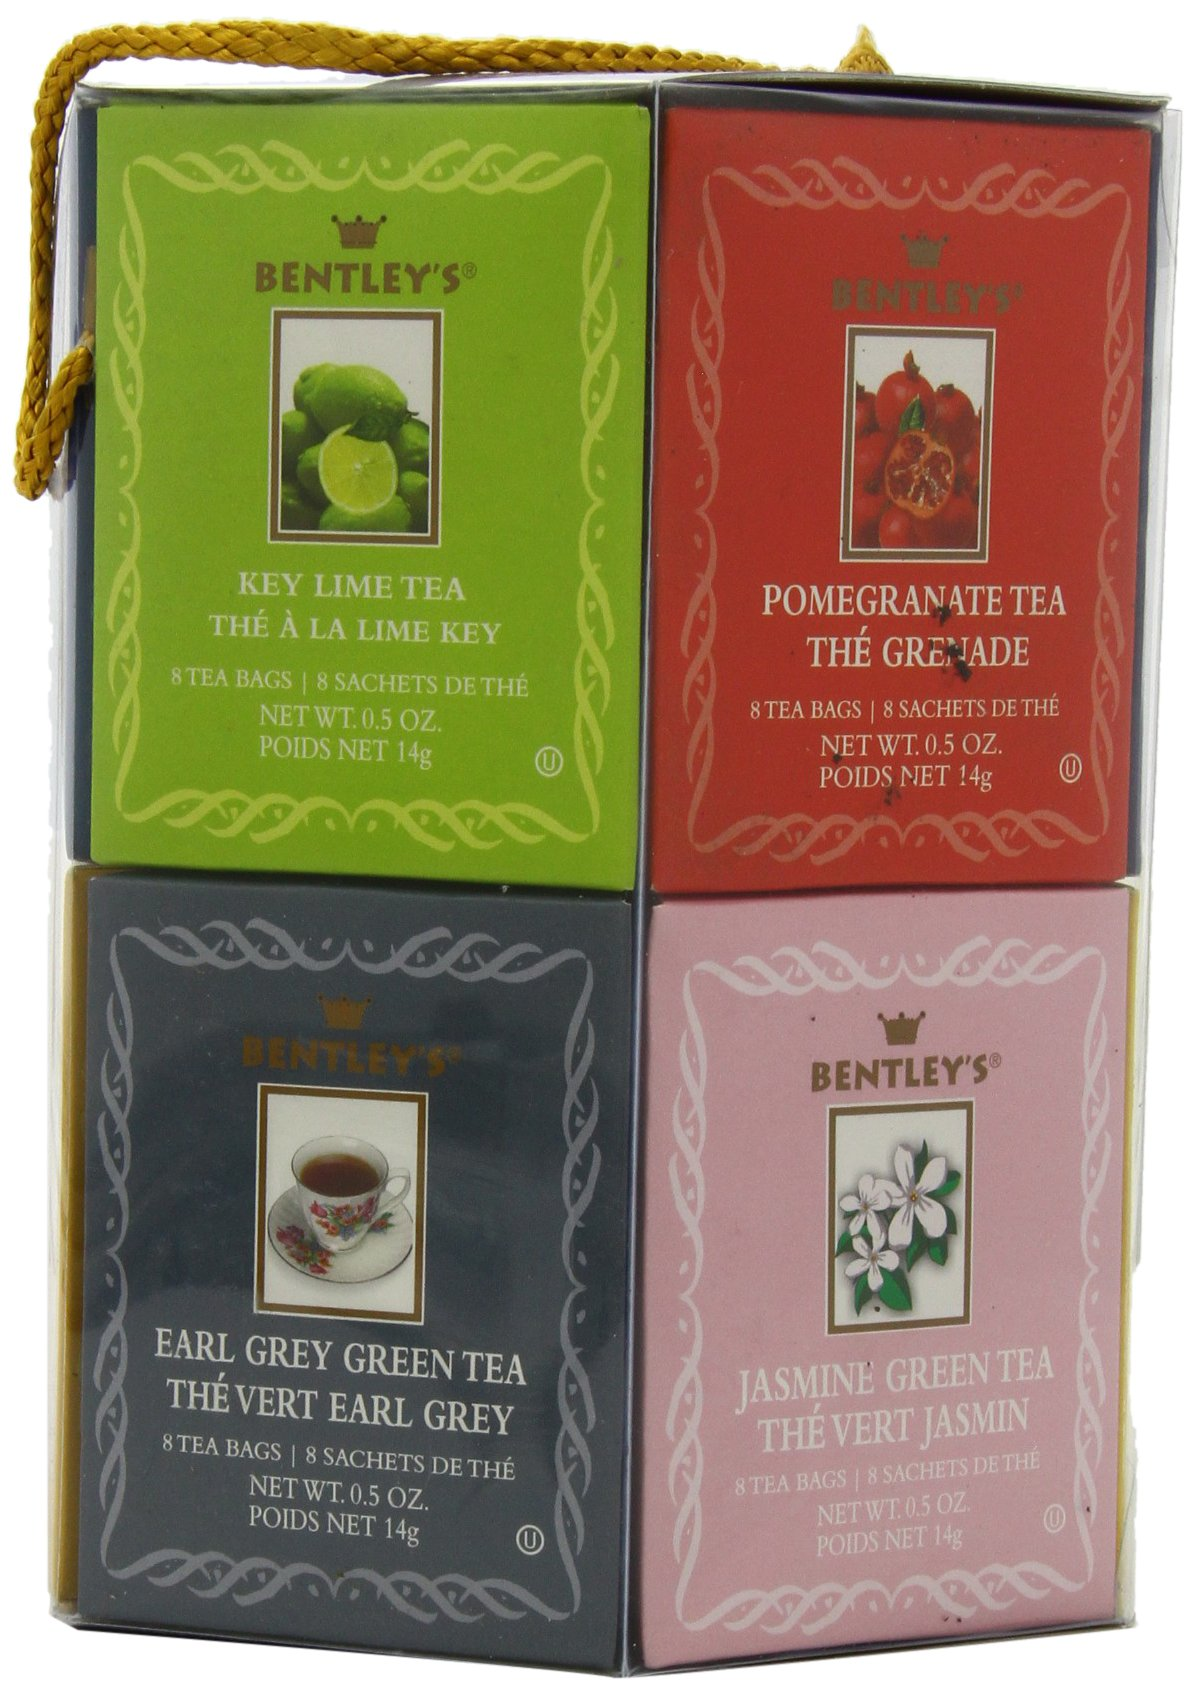 Bentley's Royal Classic Collection Assorted Flavor Gift Pack, 96 Tea Bags (Pack of 2), Includes 8 Bags Each of a Variety of Black and Green Tea Flavors by Bentley's (Image #3)